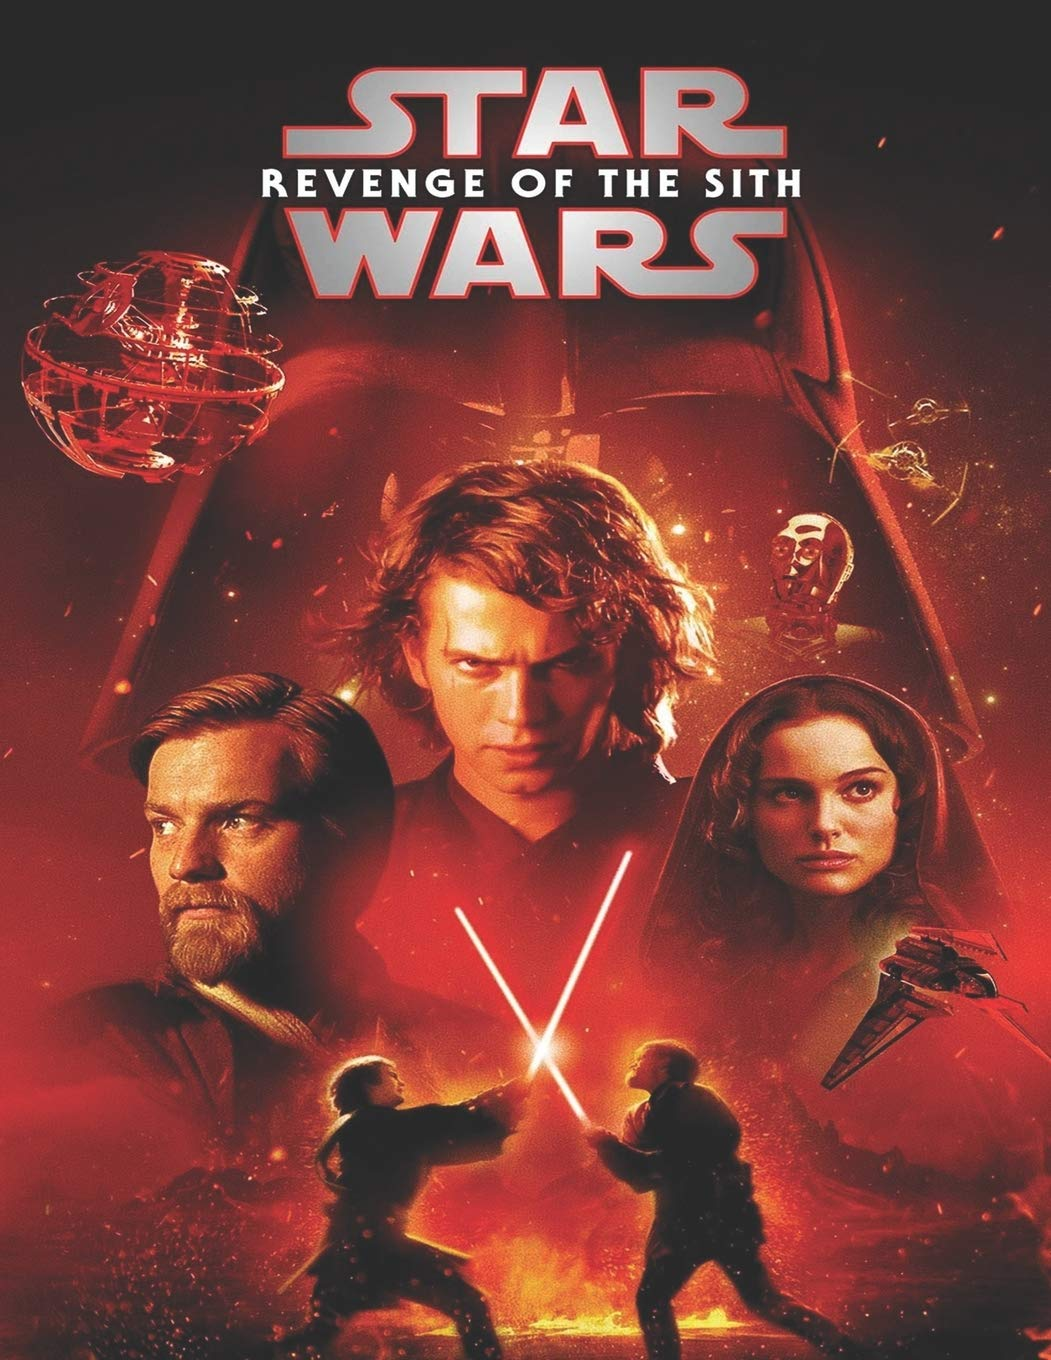 Star Wars Revenge Of The Sith Movie Script Amazon Co Uk Diaz Lll Antonio 9798633931723 Books